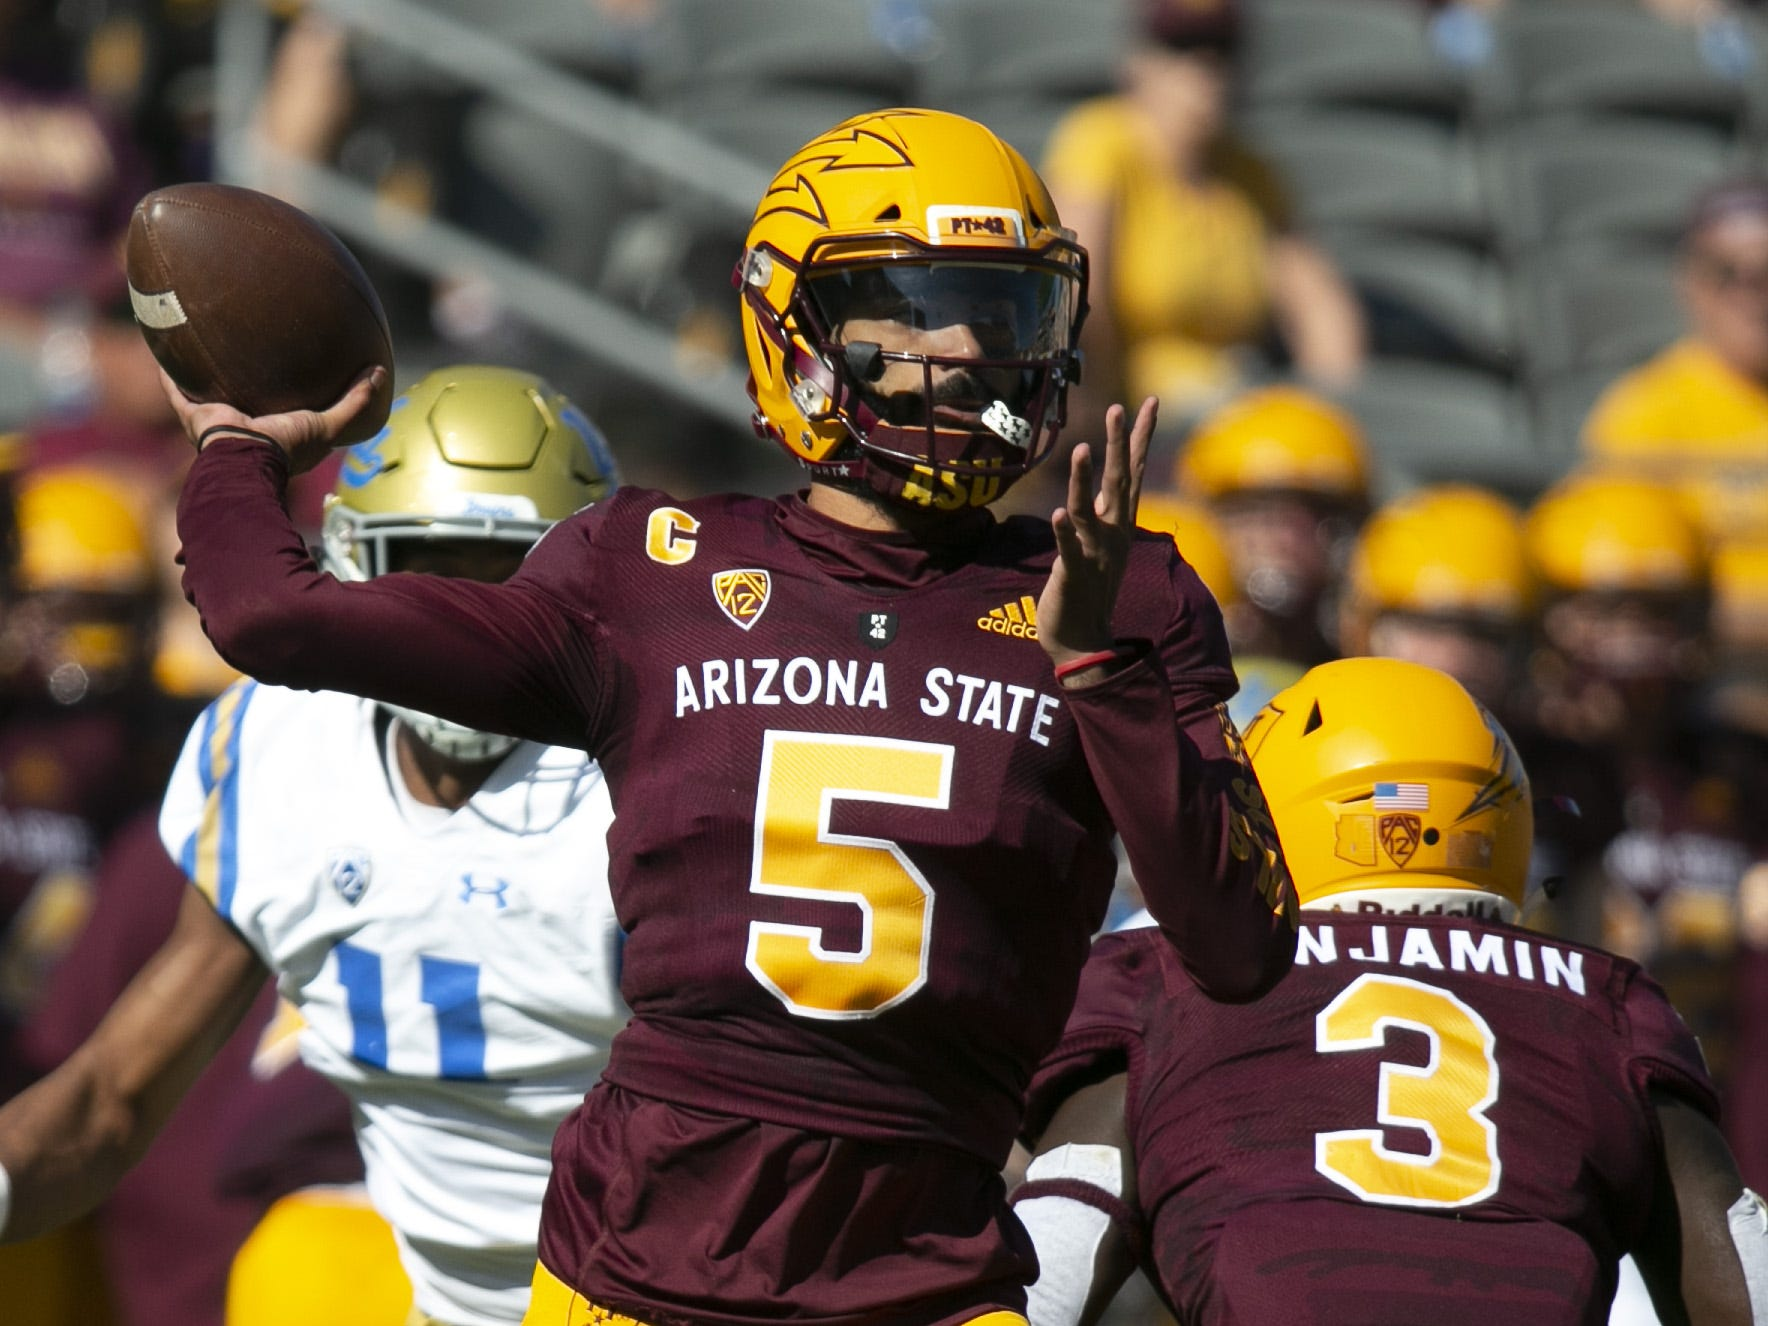 ASU quarterback Manny Wilkins passes during the first quarter of the PAC-12 college football game against UCLA at Sun Devil Stadium in Tempe on Saturday, November 10, 2018.